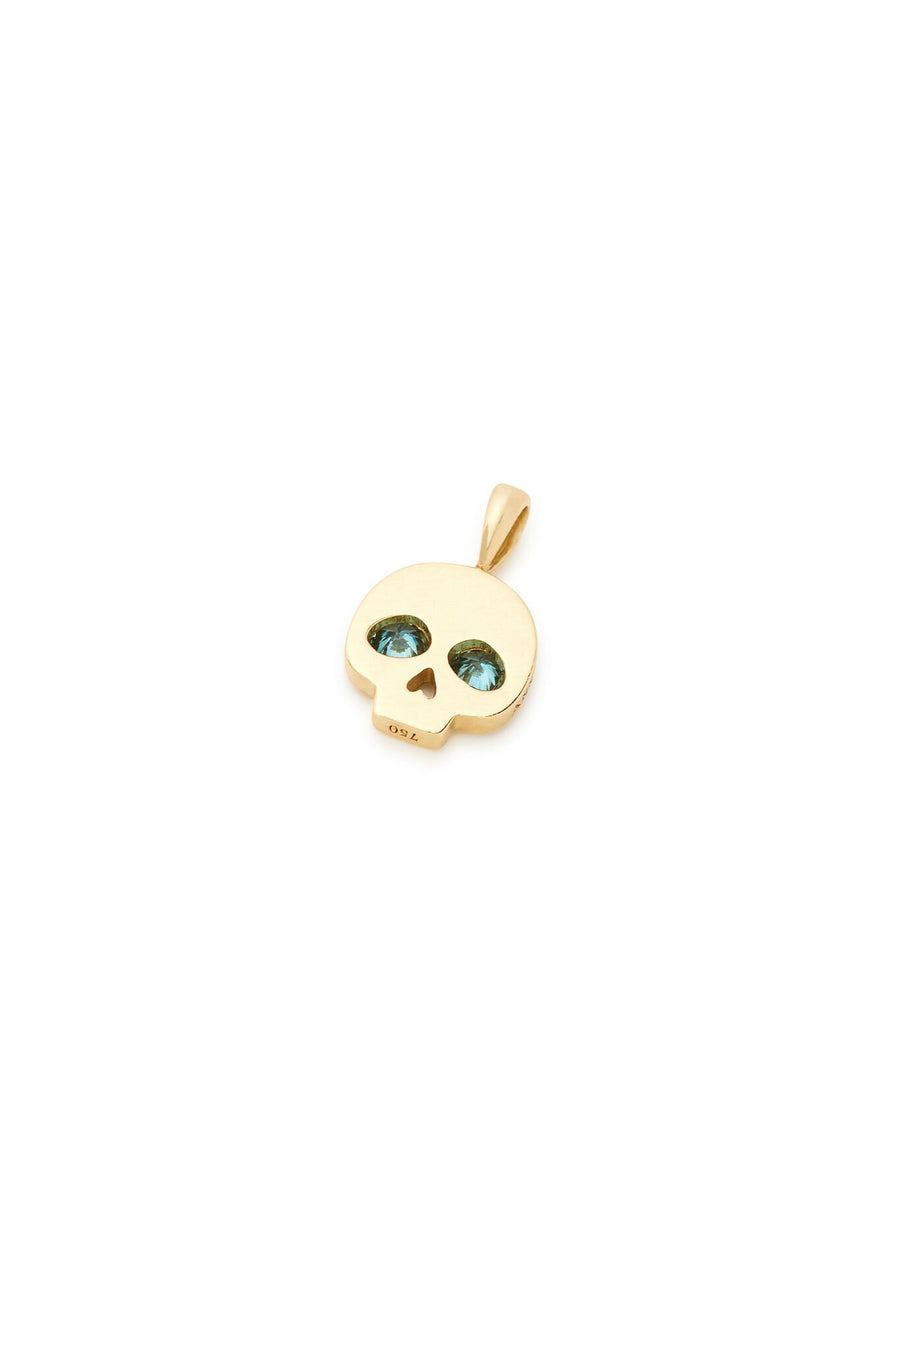 18K Gold White and Blue Diamonds Skull Charm